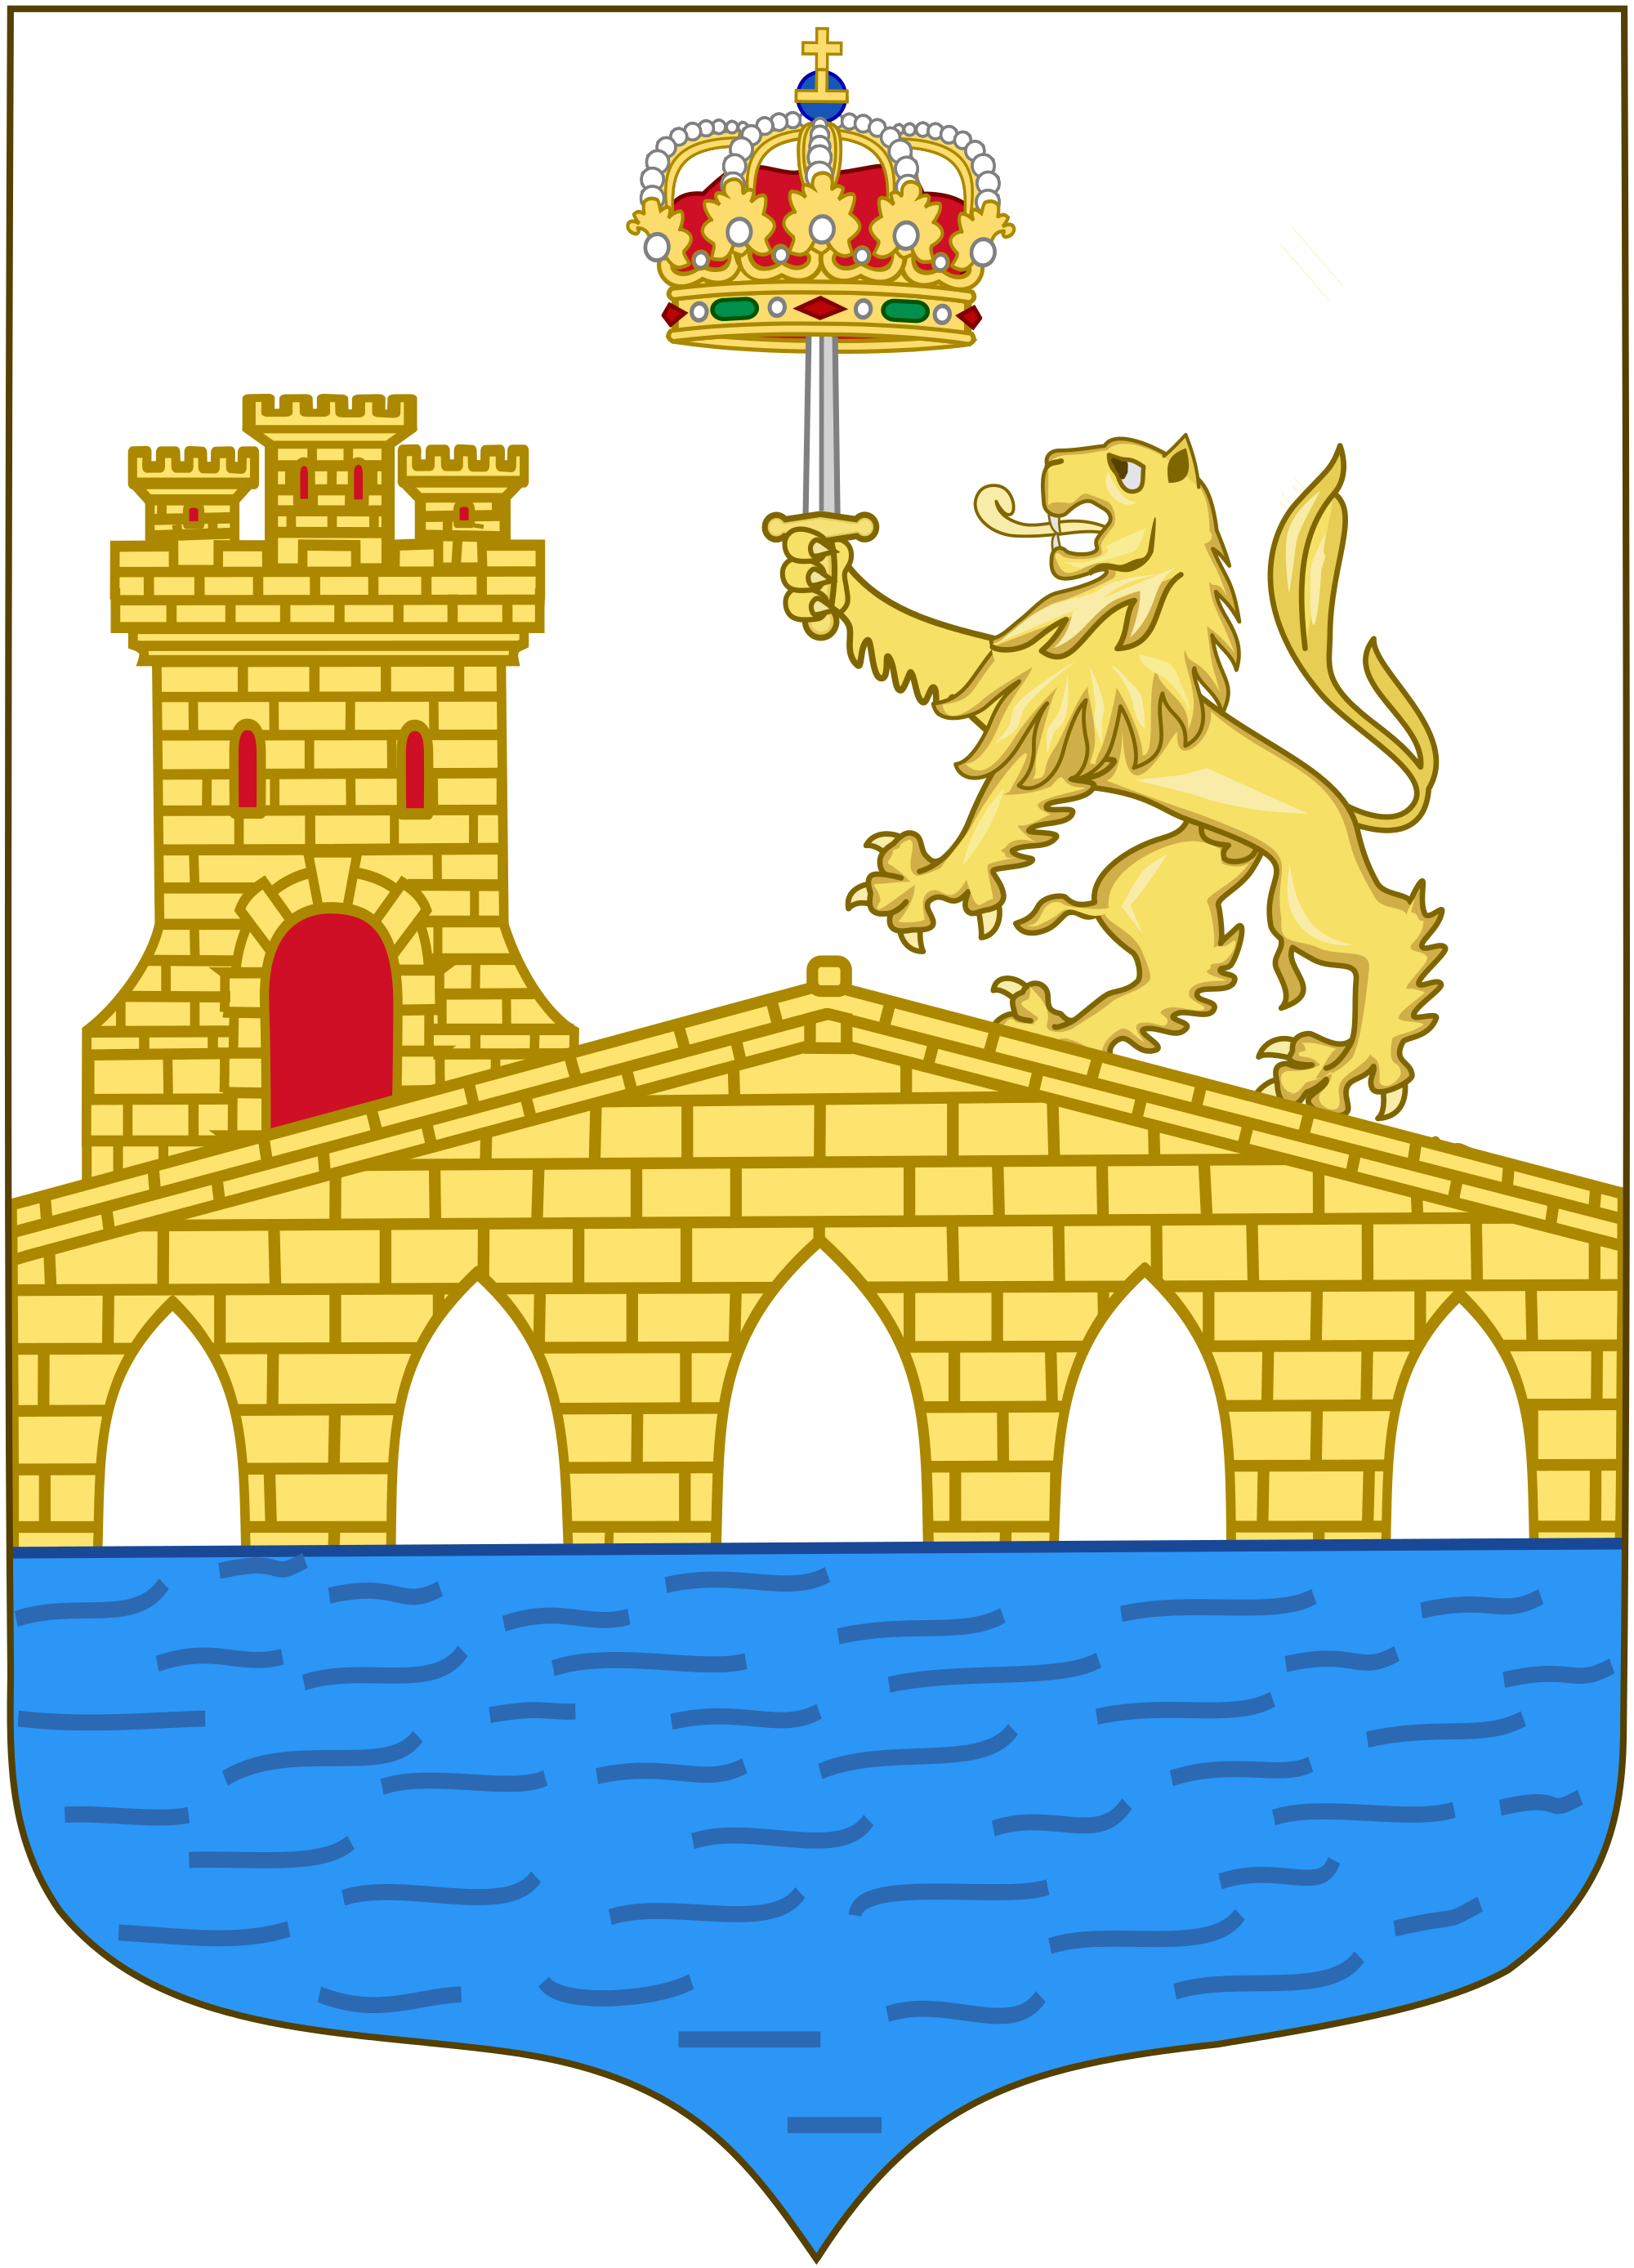 File:Arms of Ourense.svg.